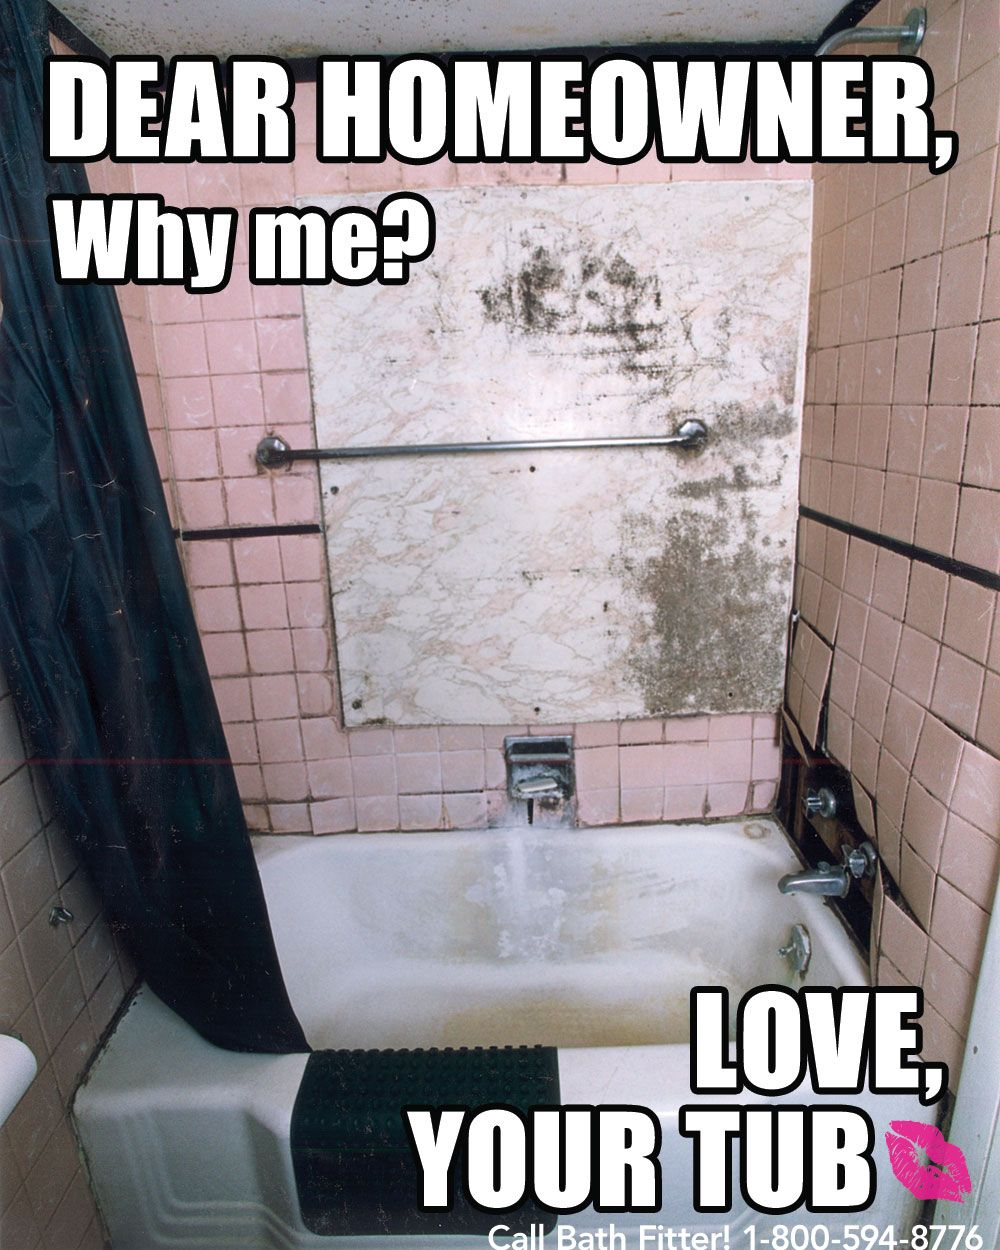 Bathroom Remodel Meme this tub just wants some love. #bathrooms #meme | if your tub